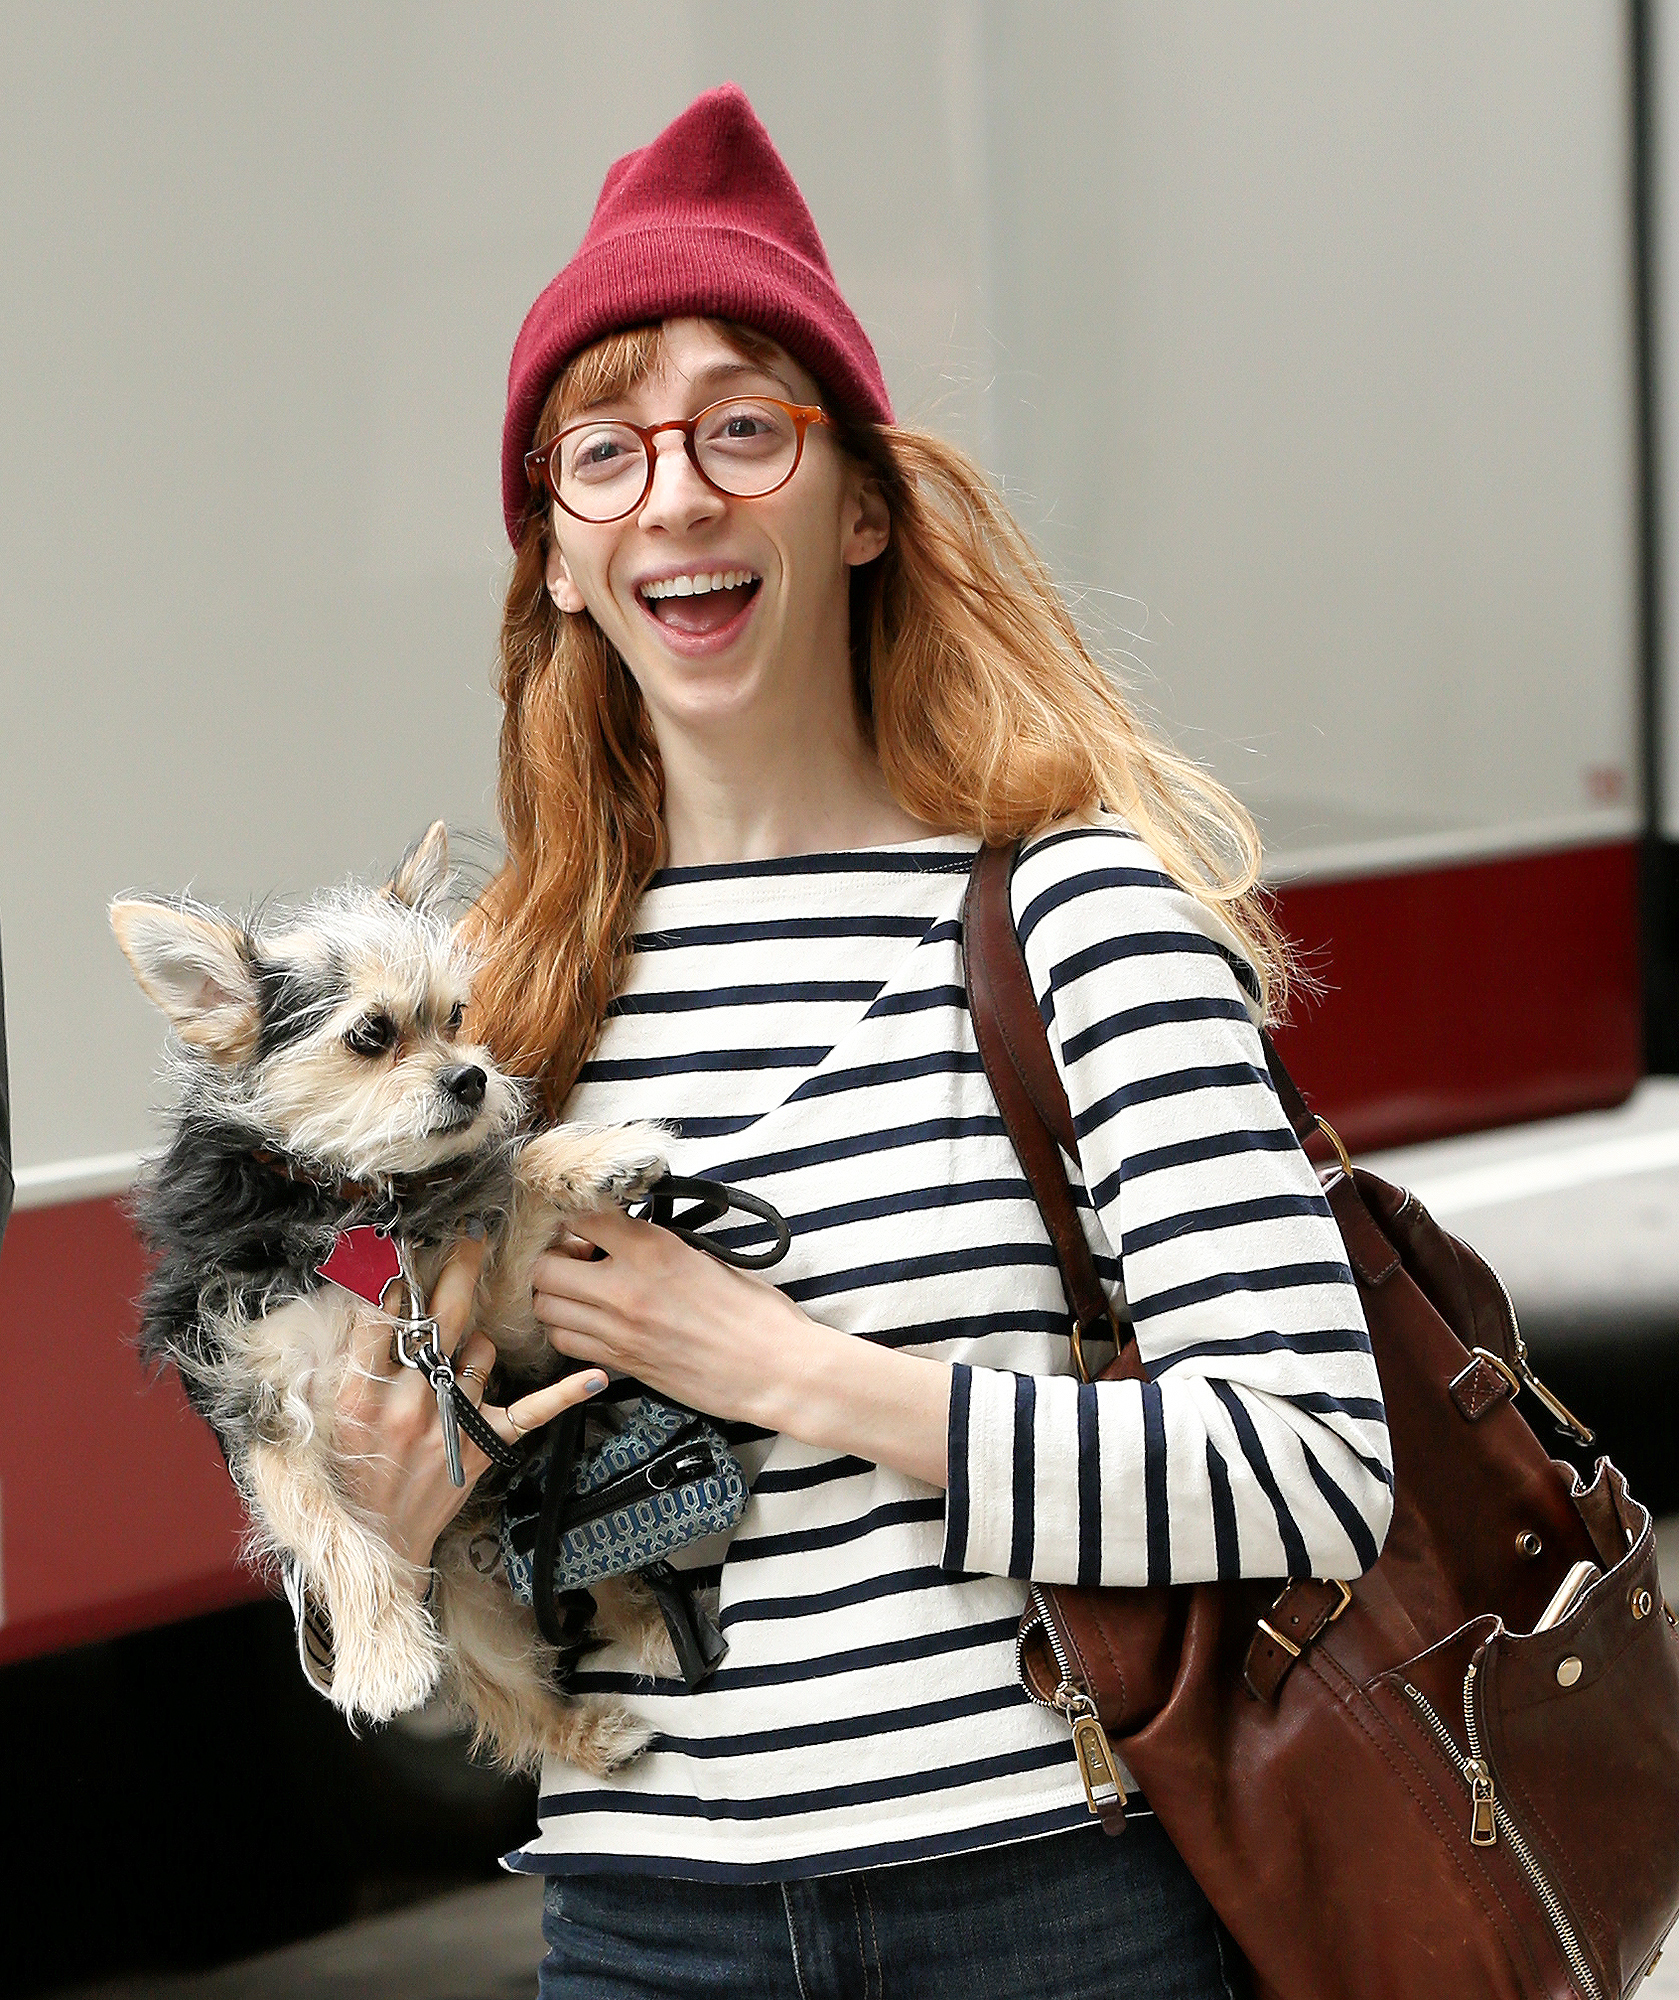 Actress Molly Bernard carries her dog to the set of 'Younger' filming in New York